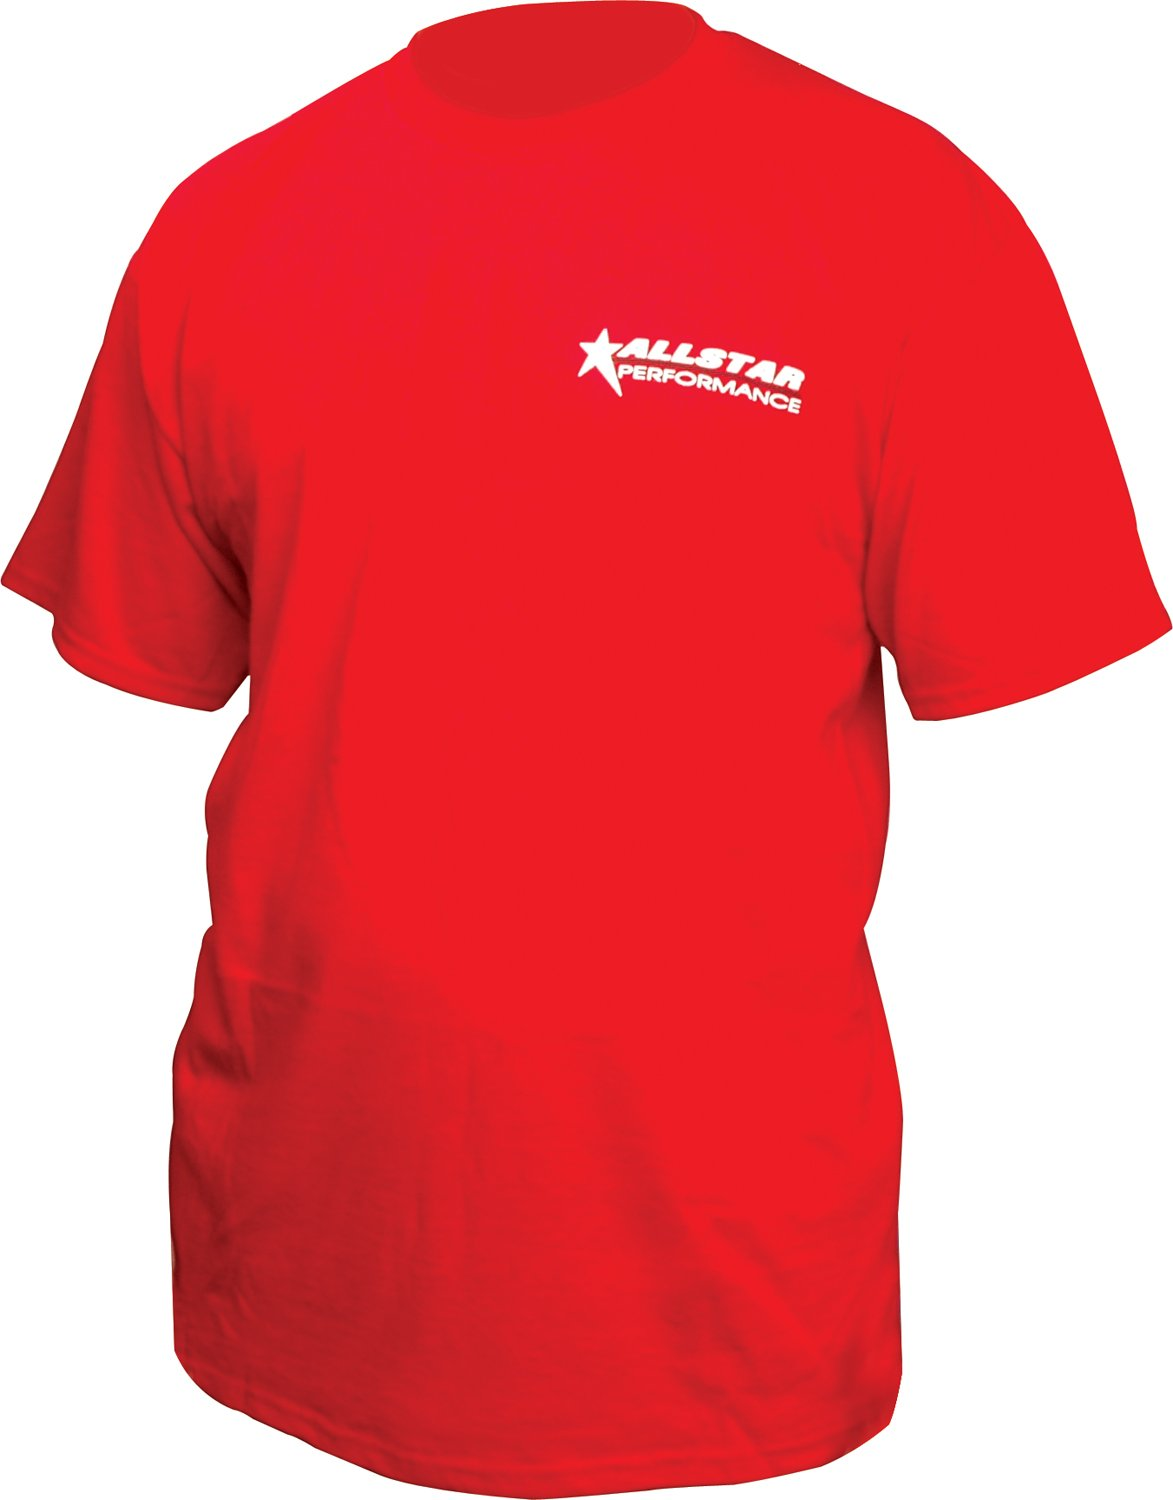 Allstar ALL99904XXL Red XX-Large T-Shirt with Allstar Logo Front and Back